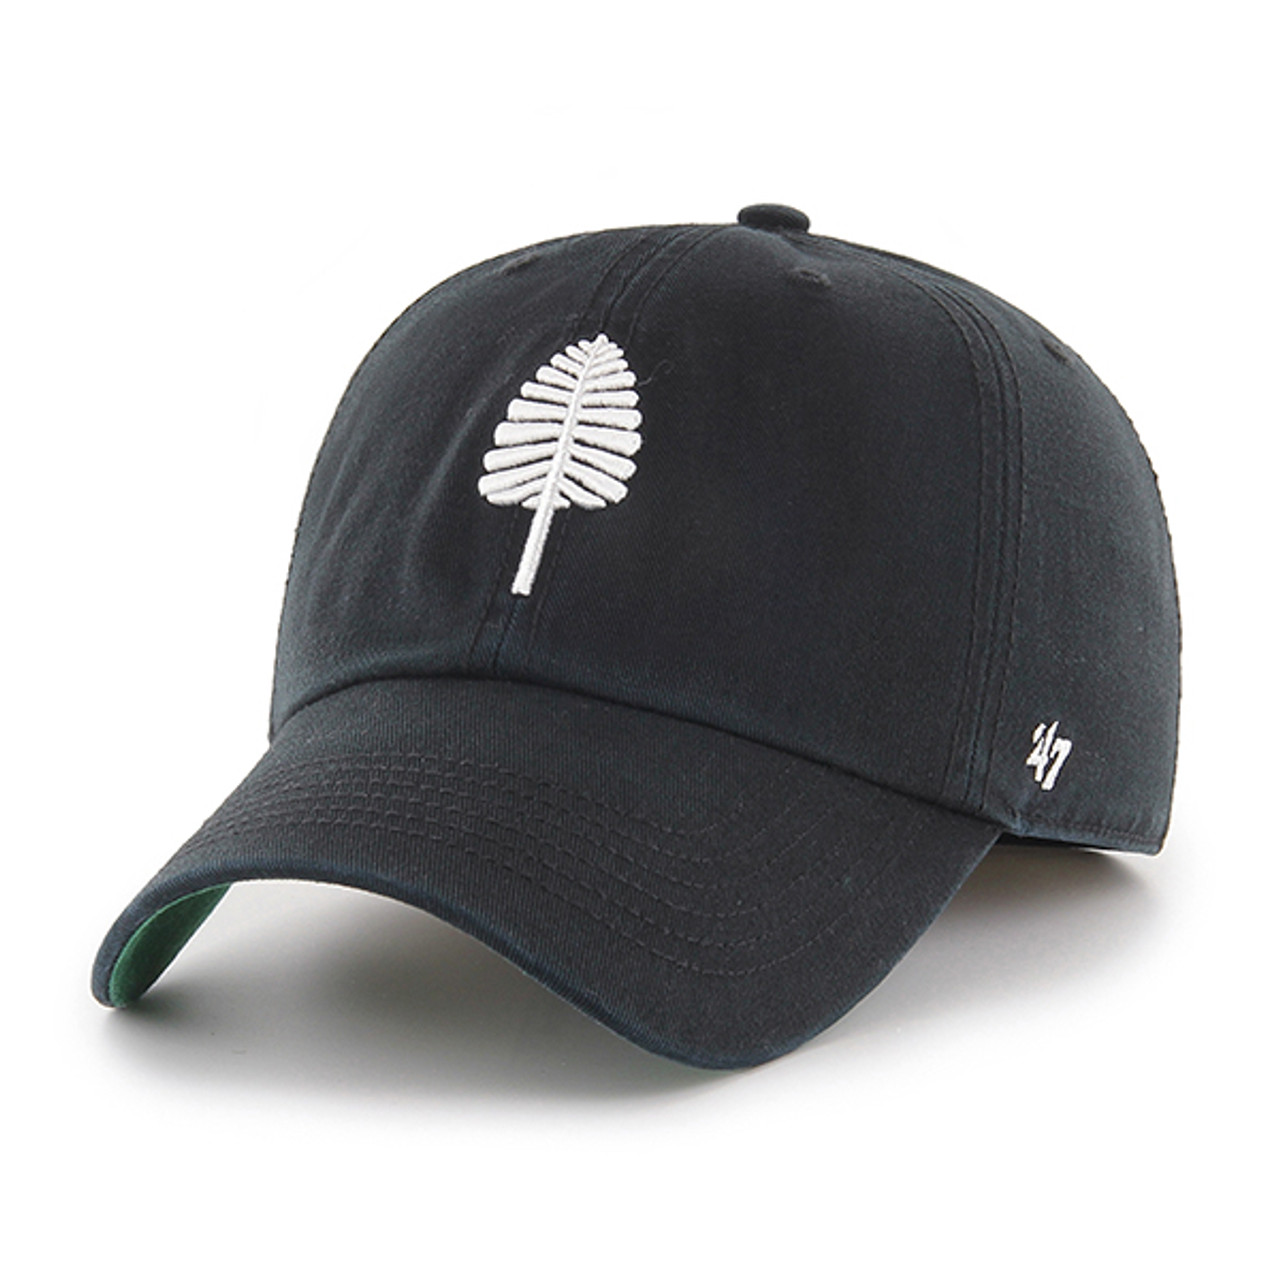 37210cc04c7 Franchise Lone Pine Black Fitted Hat - Dartmouth Co-op